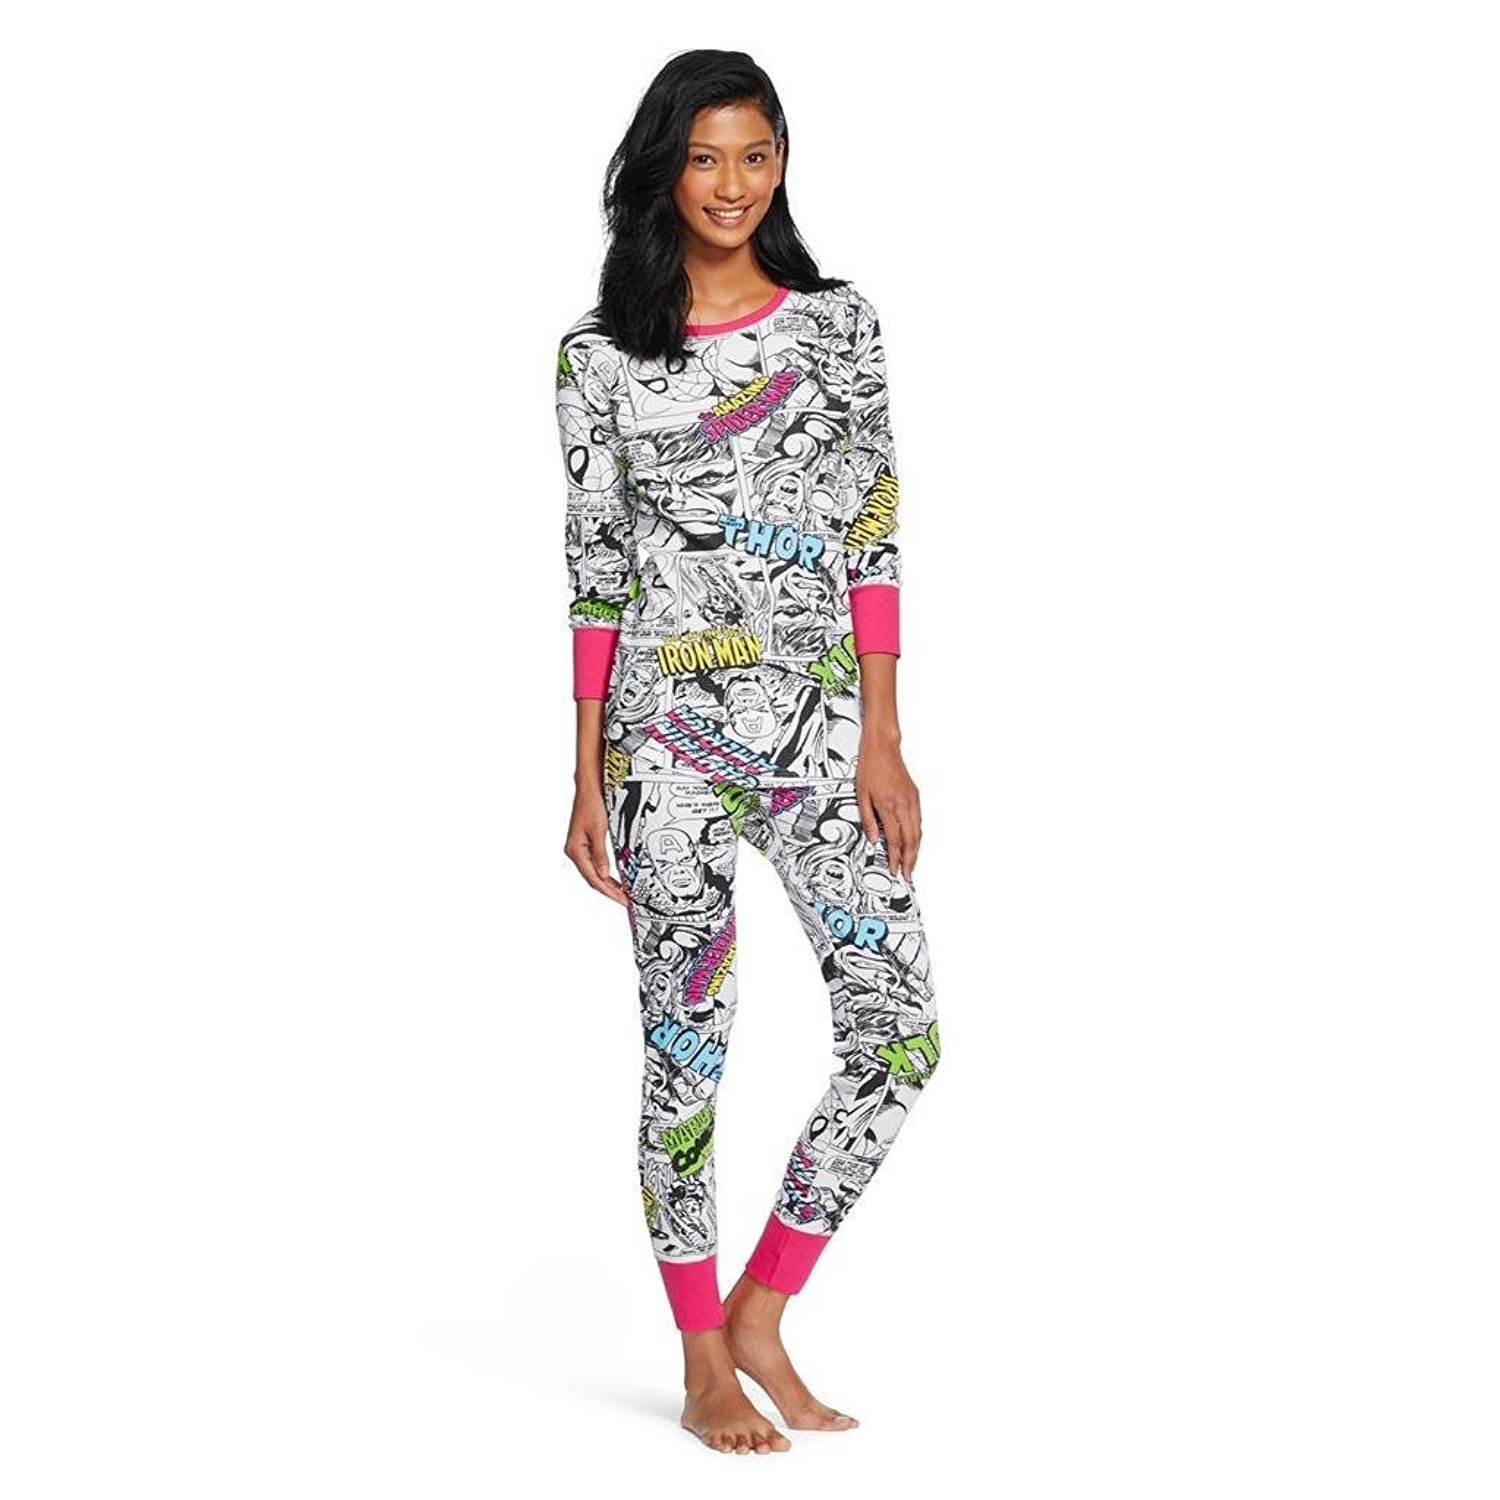 Marvel Avengers Womens Thermal Sleep 2 pc Set Long Underw...